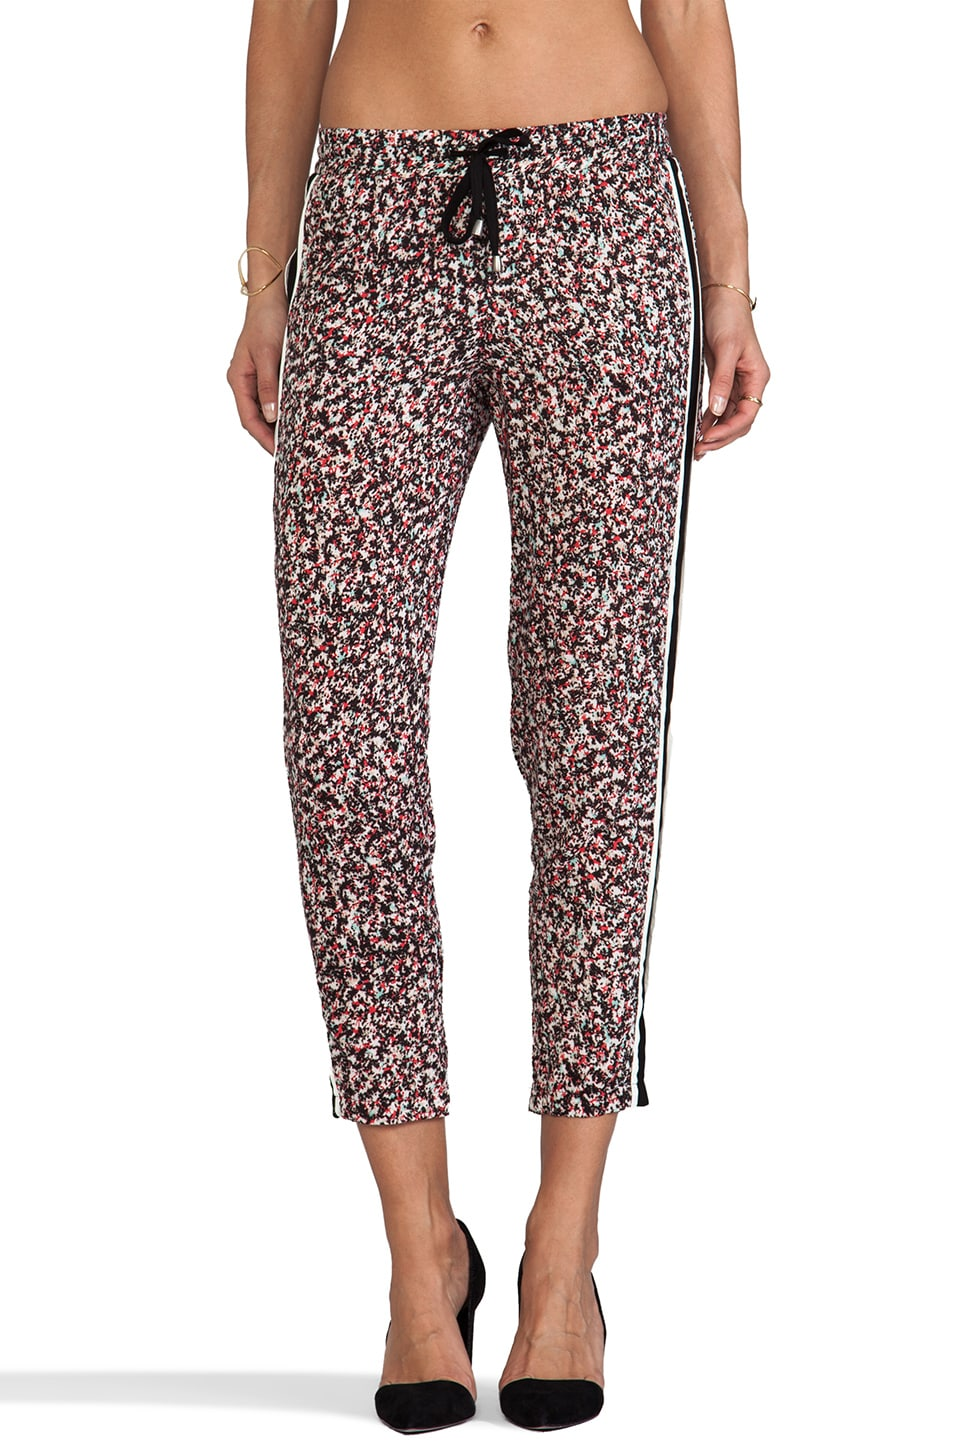 Splendid African Wildflowers Pant in Black